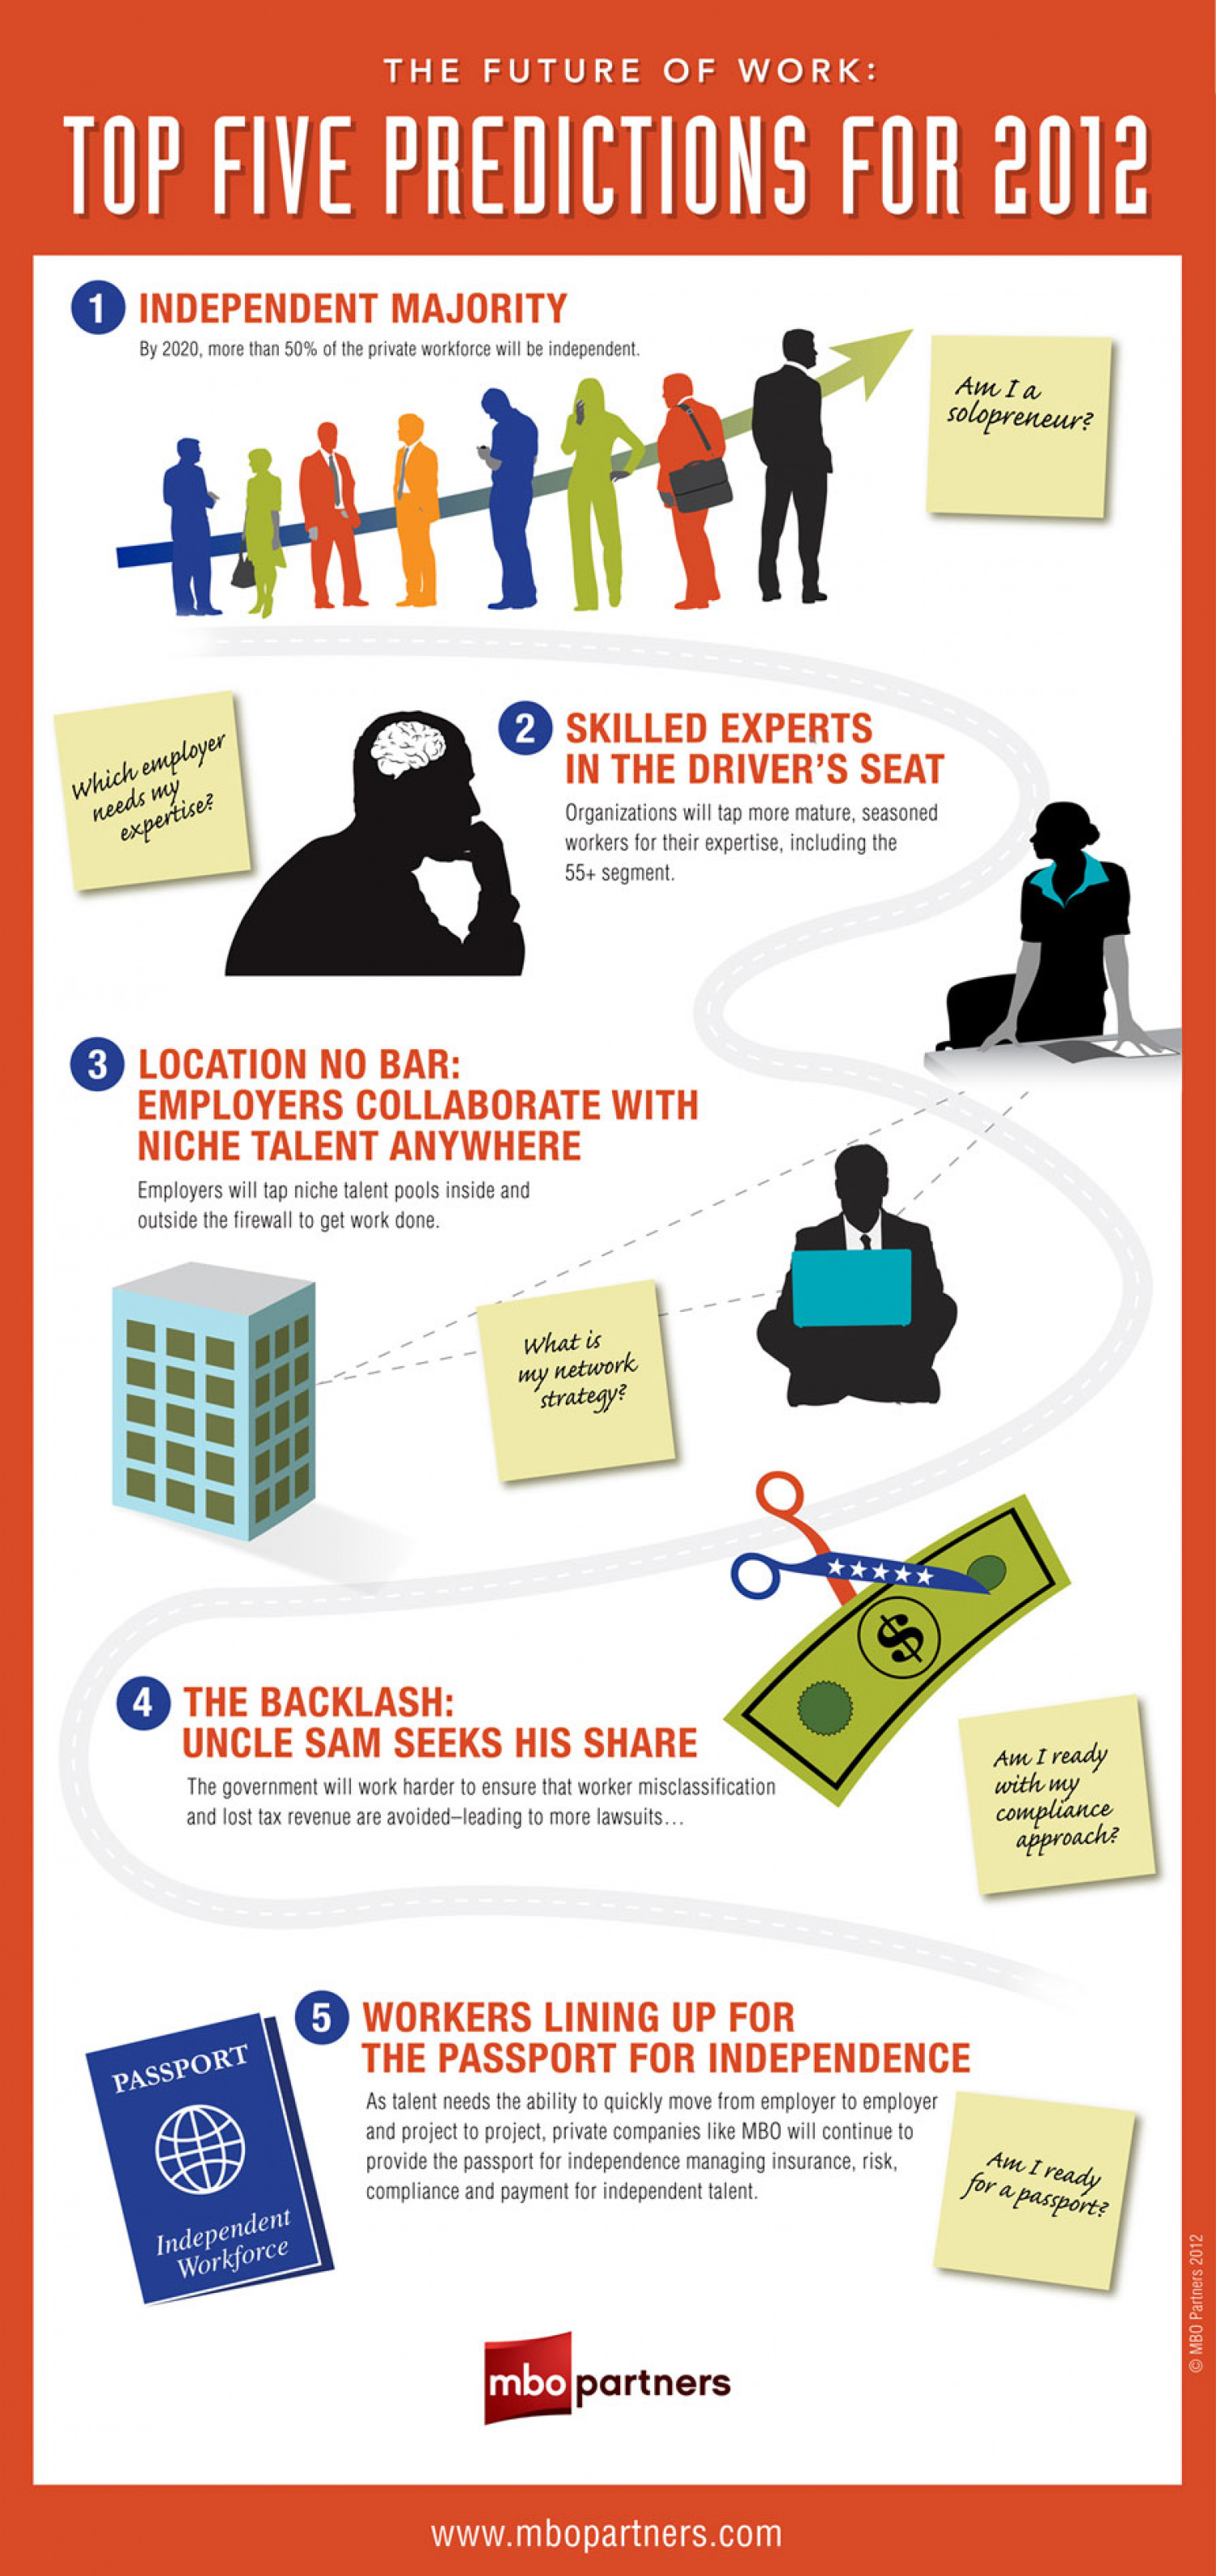 The Future of Work: Top 5 Predictions for 2012 Infographic